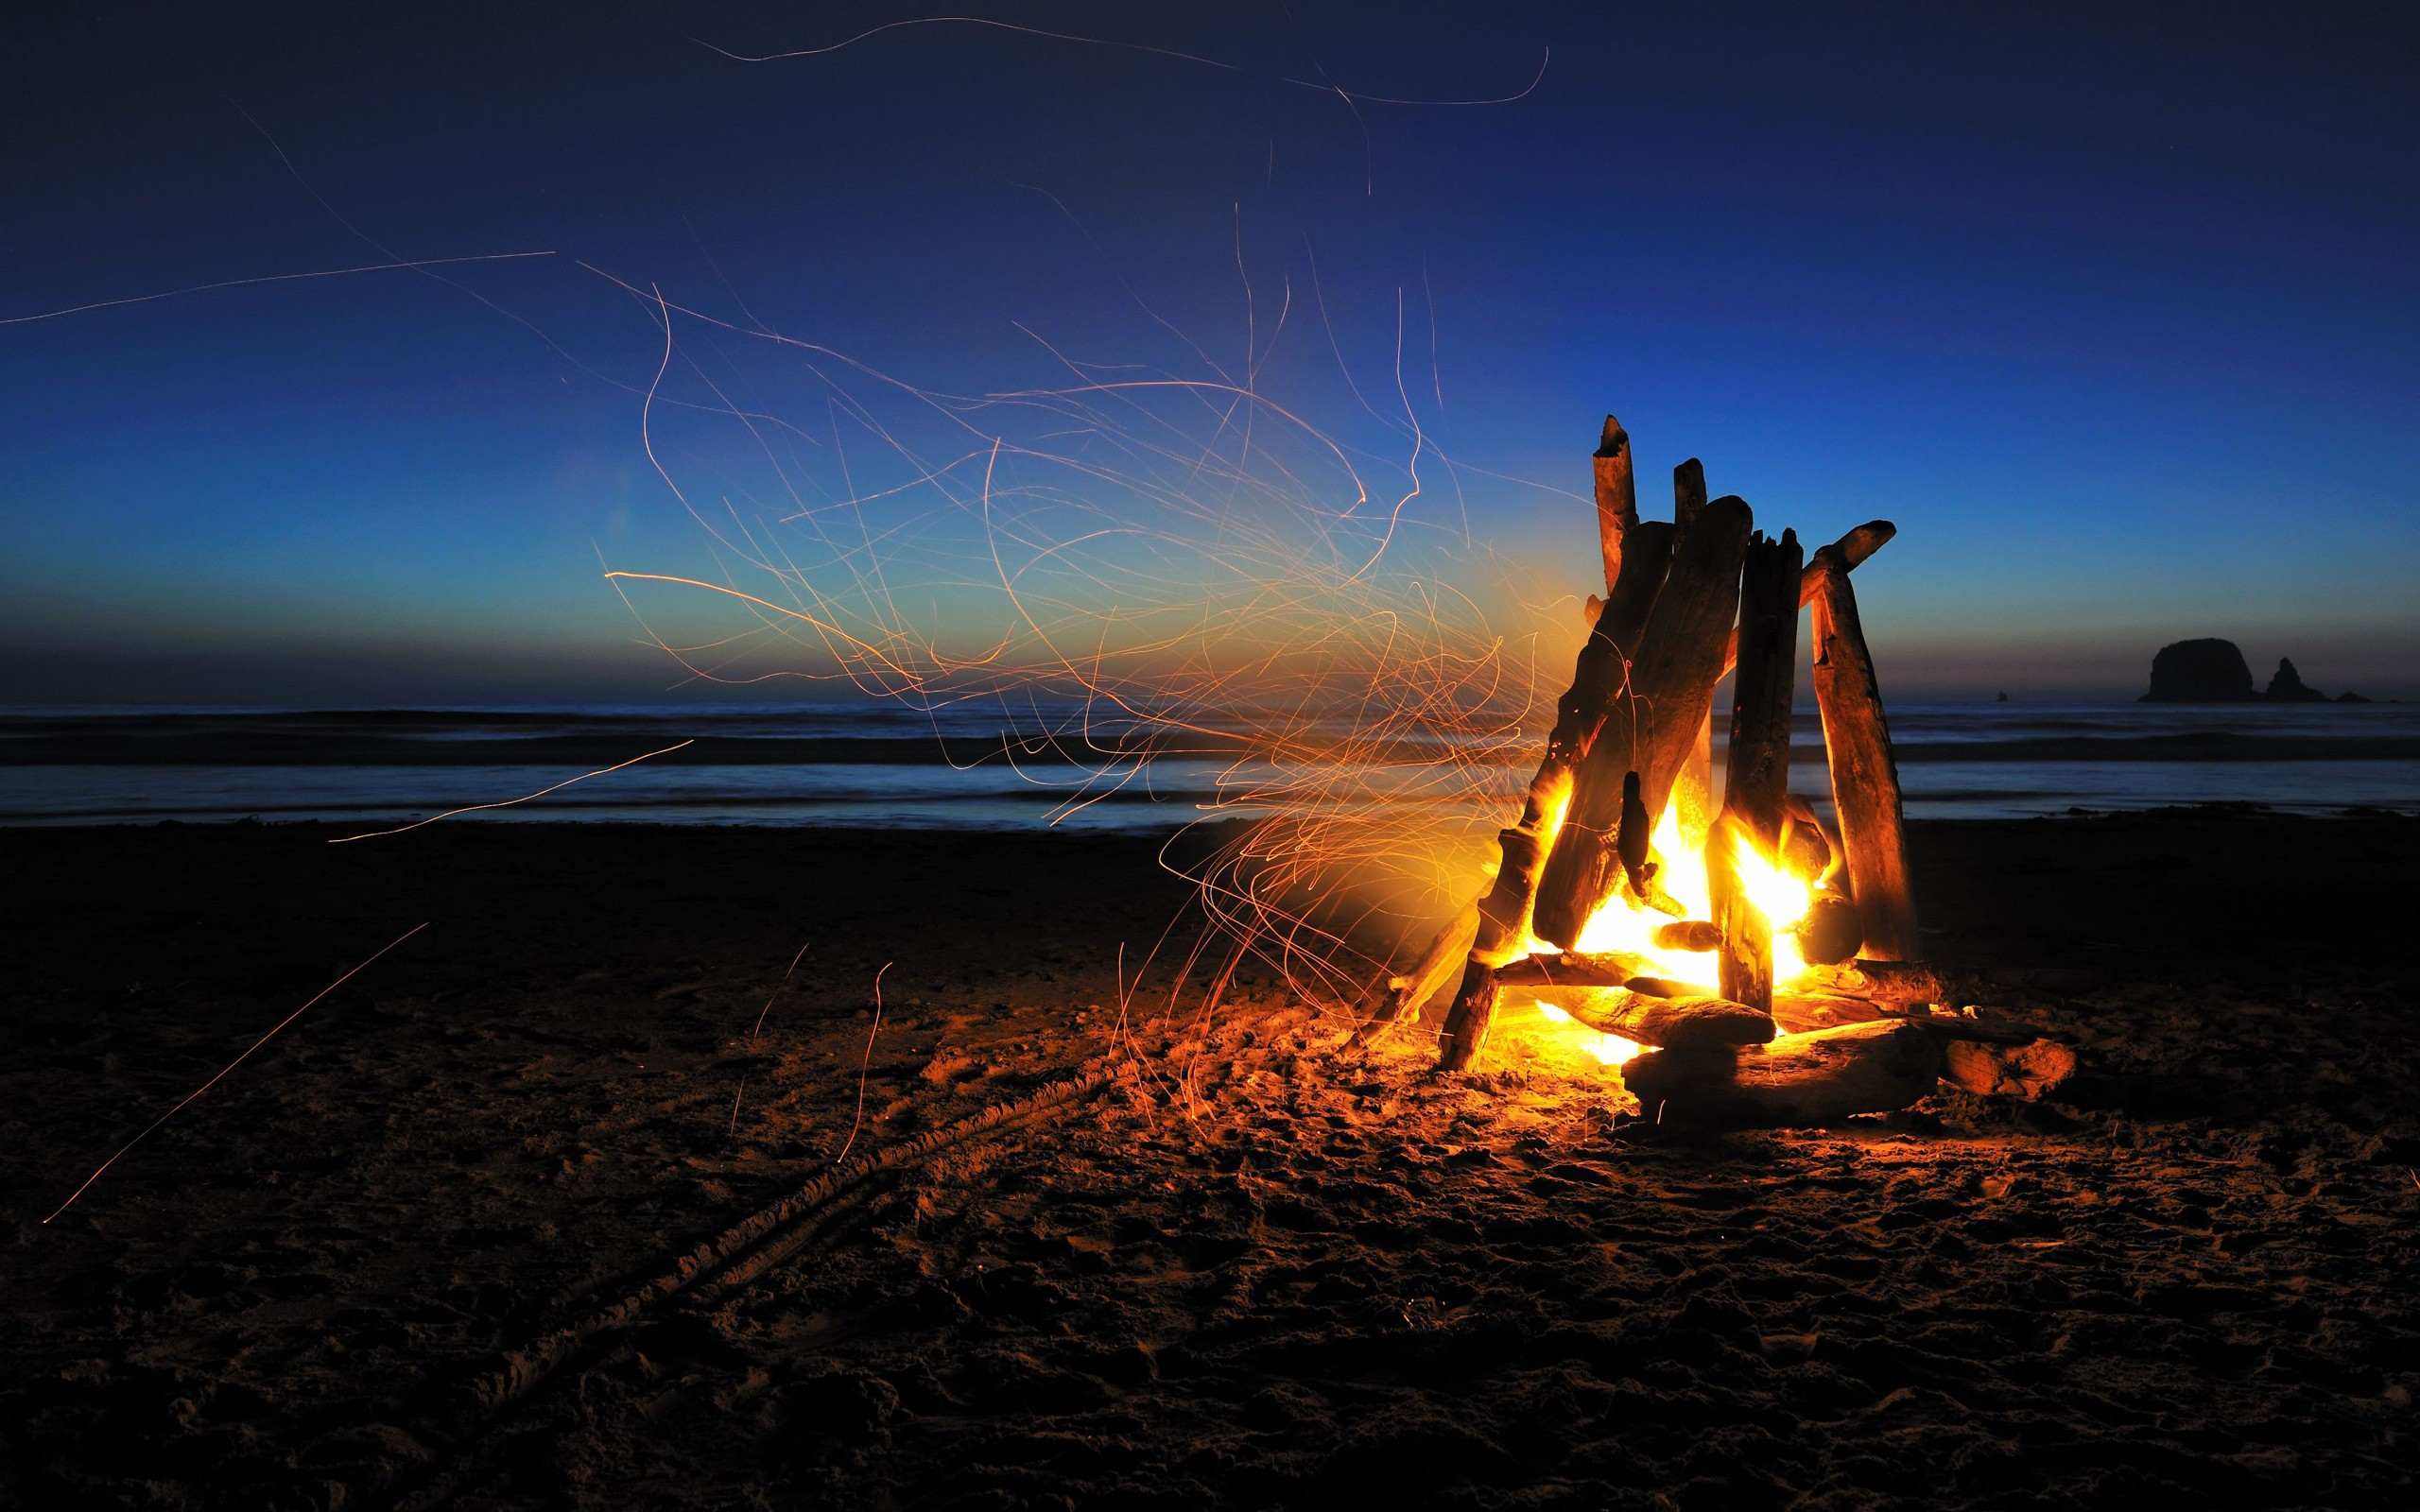 Www Socwall Com Images Wallpapers  X Jpg Pretty Pictures Pinterest Beach Camping Beach Bonfire And Camping